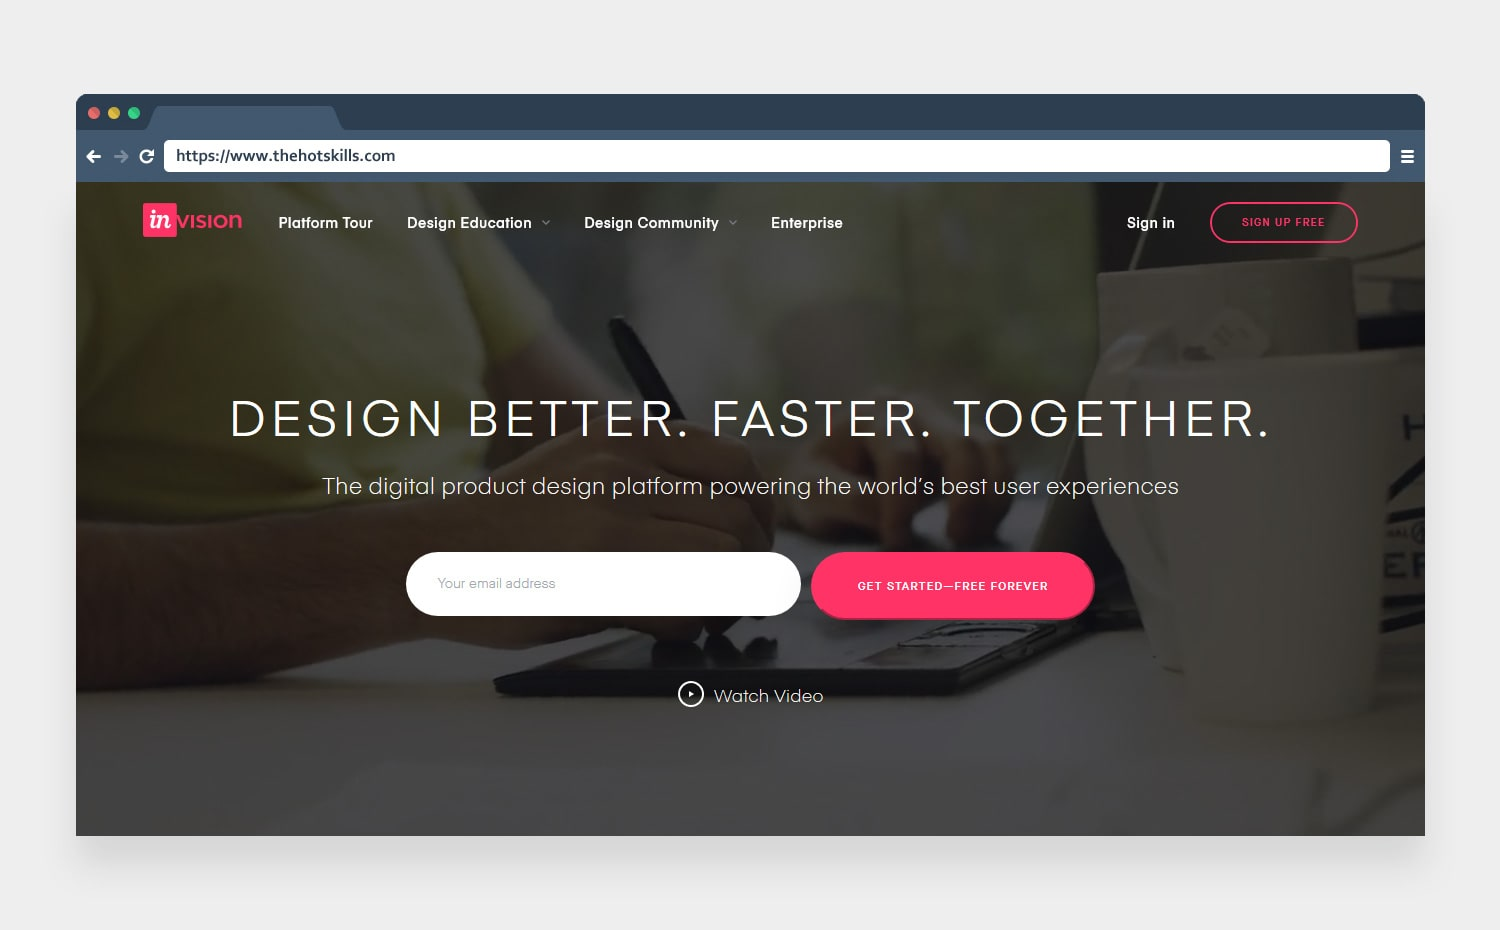 invision digital productdesign platform